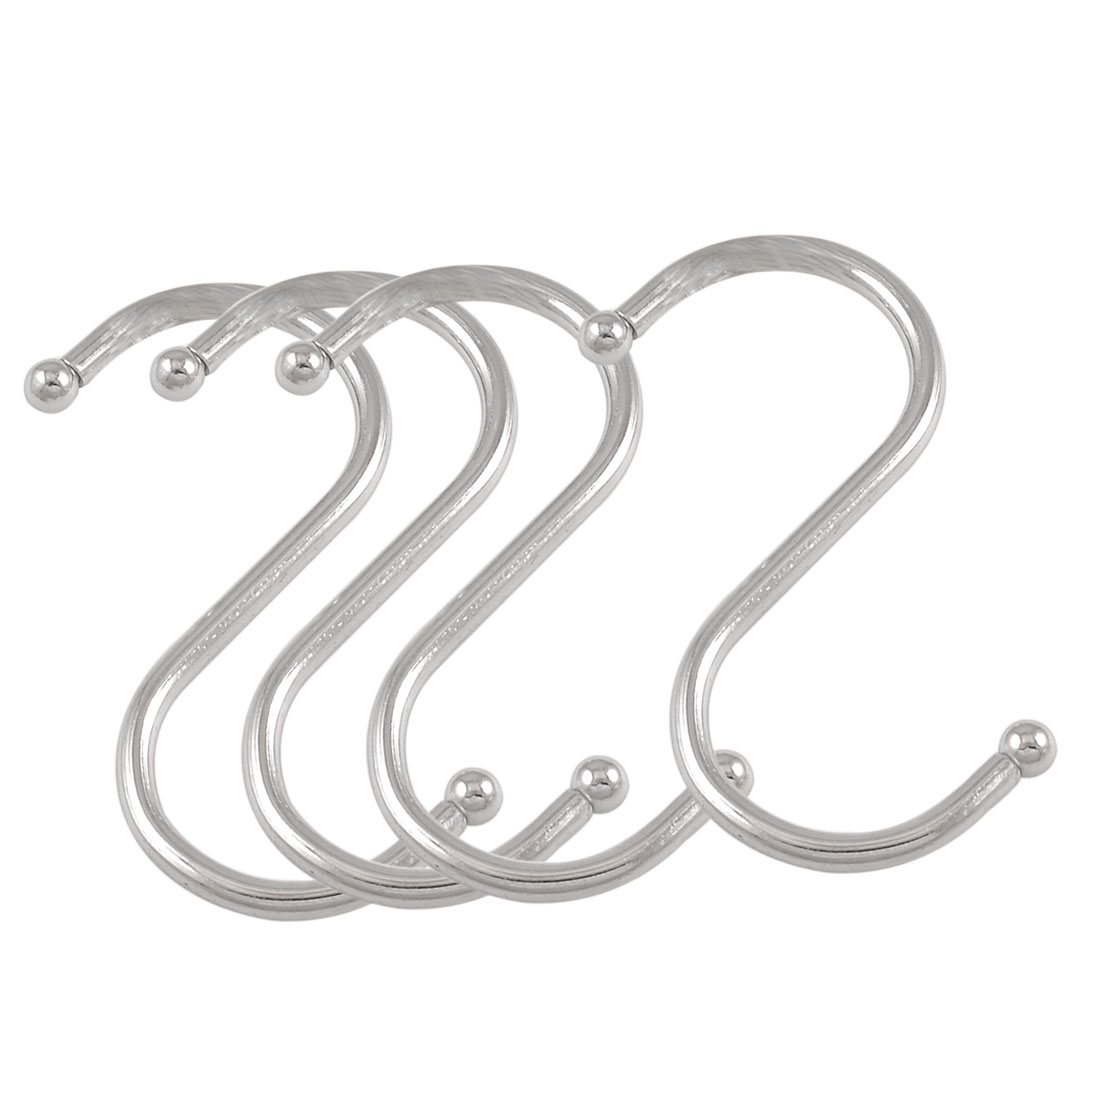 4 Pcs S Shaped Silver Tone Metal Hanging Hooks Pothooks for 2.4cm Dia Pipe